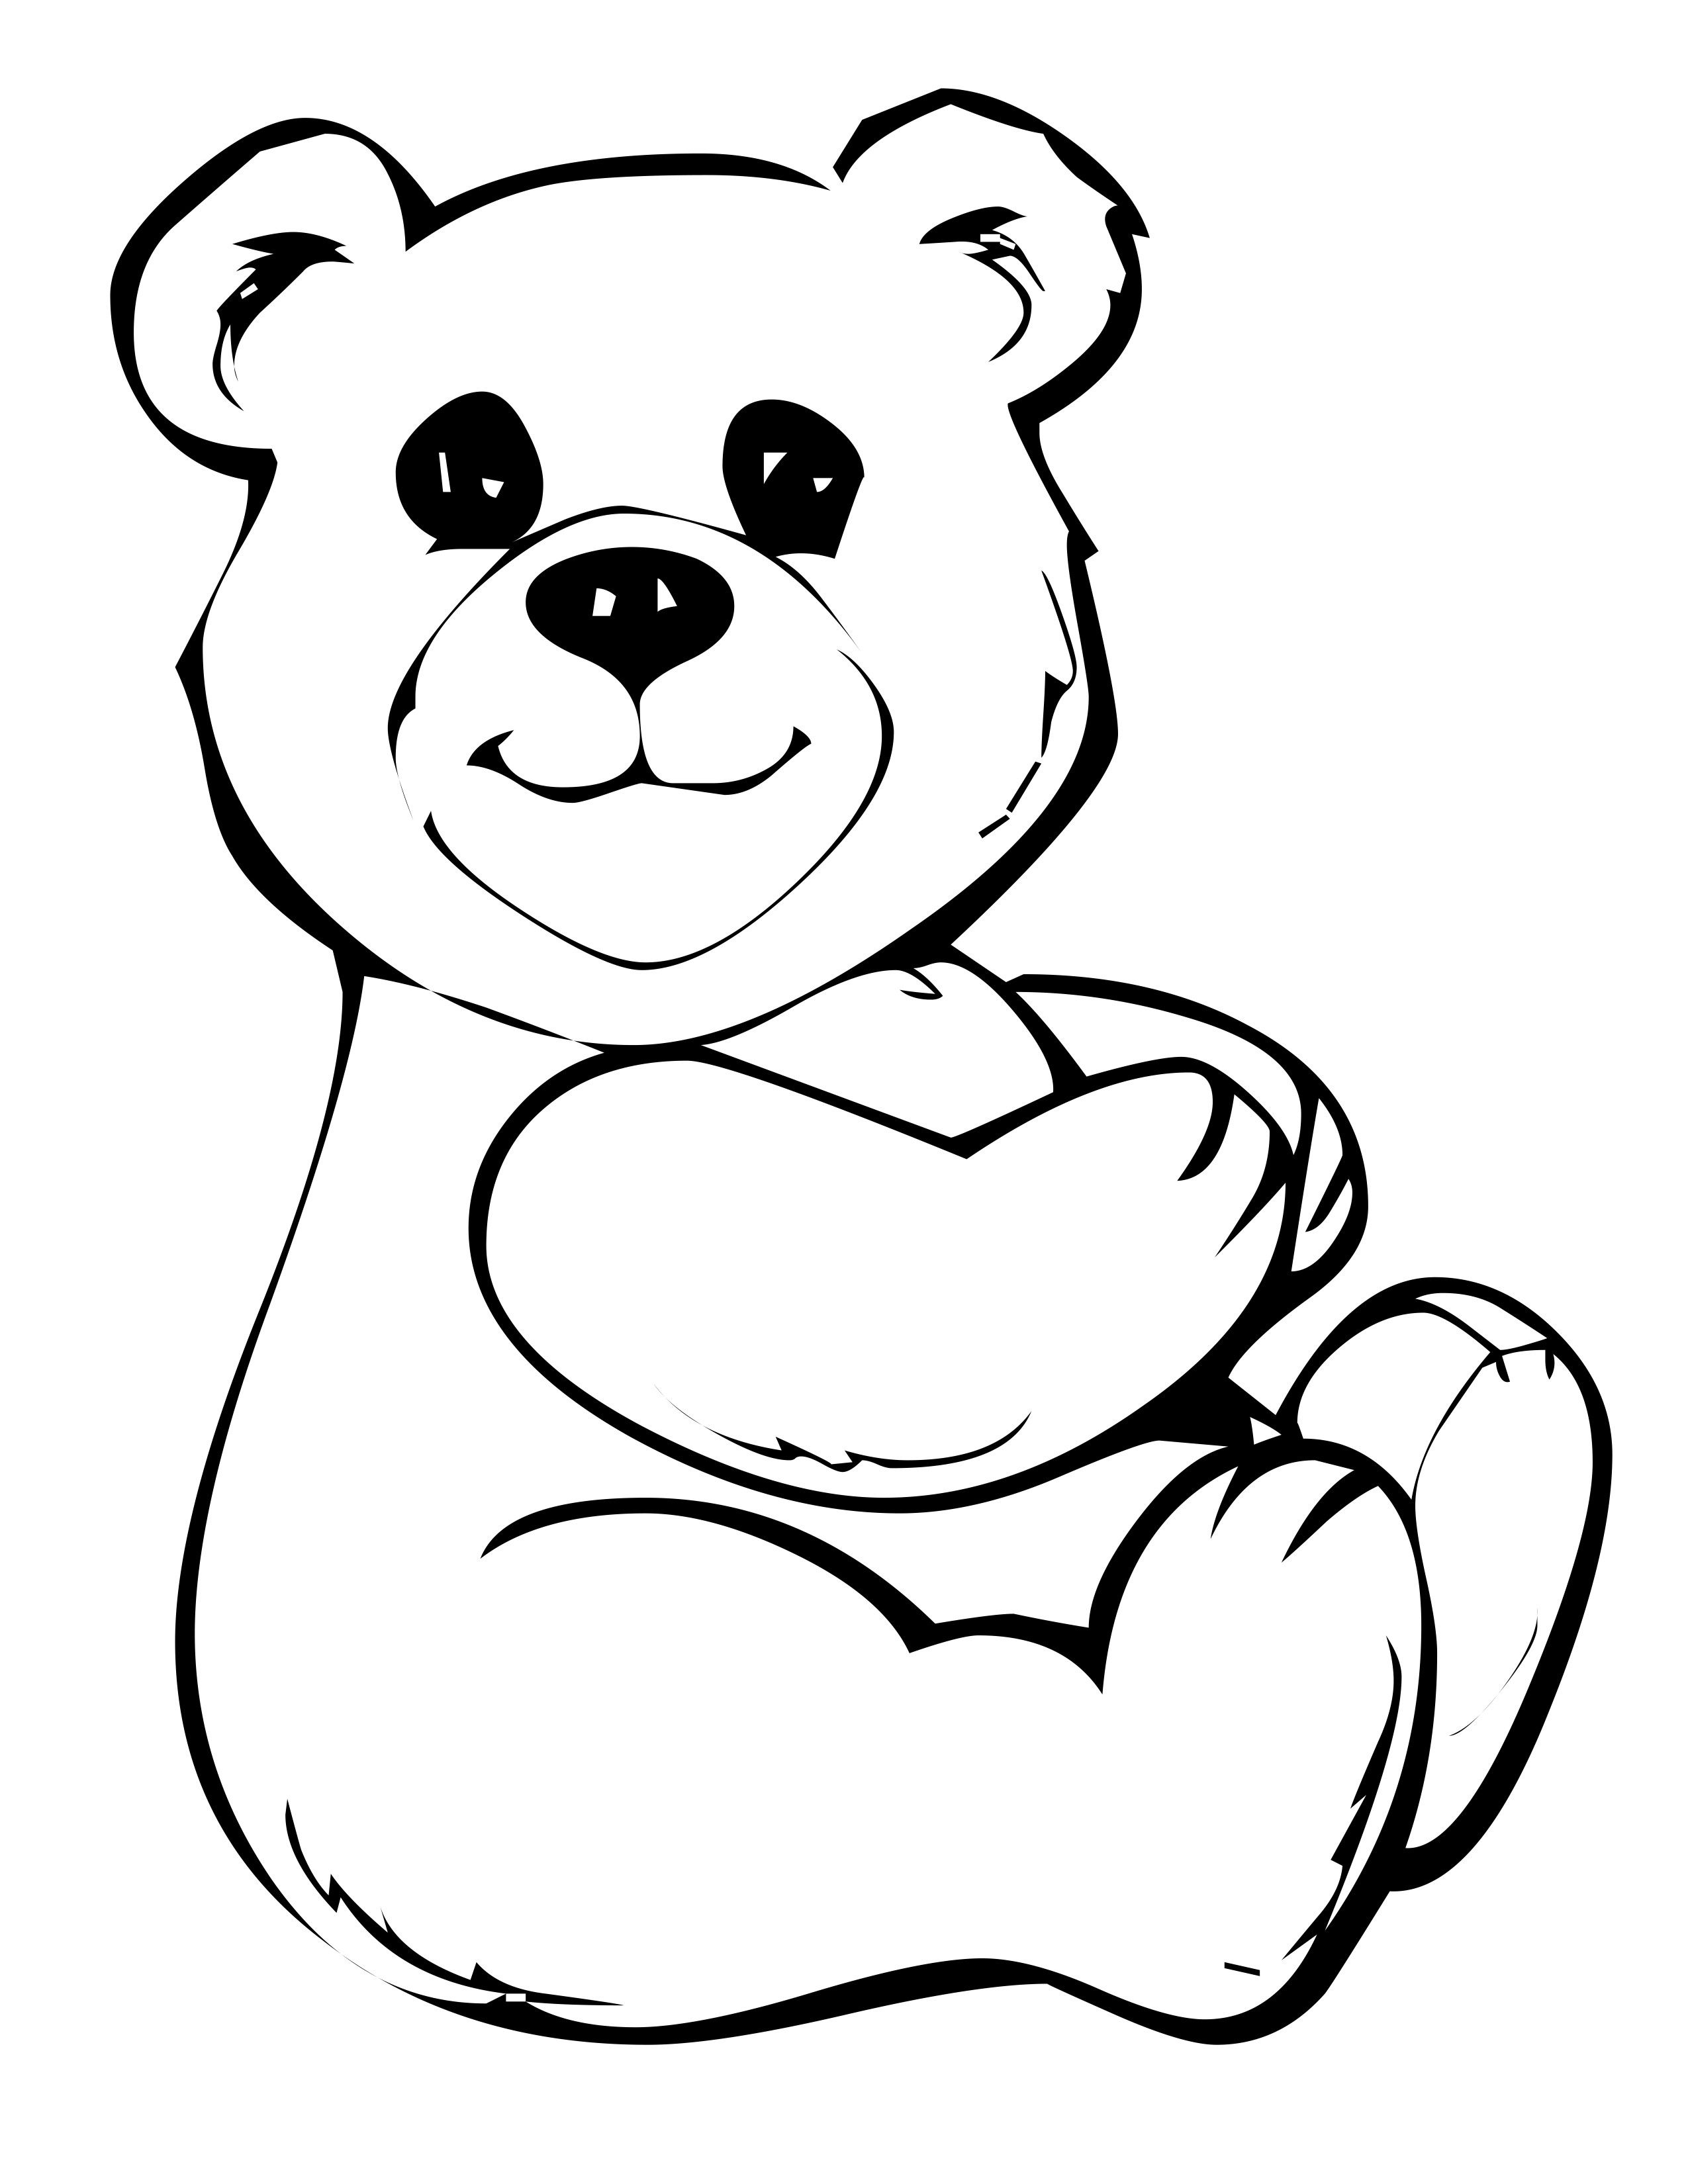 build a bear coloring pages Collection-Study Free Printable Teddy Bear Coloring Pages For Kids 17-c